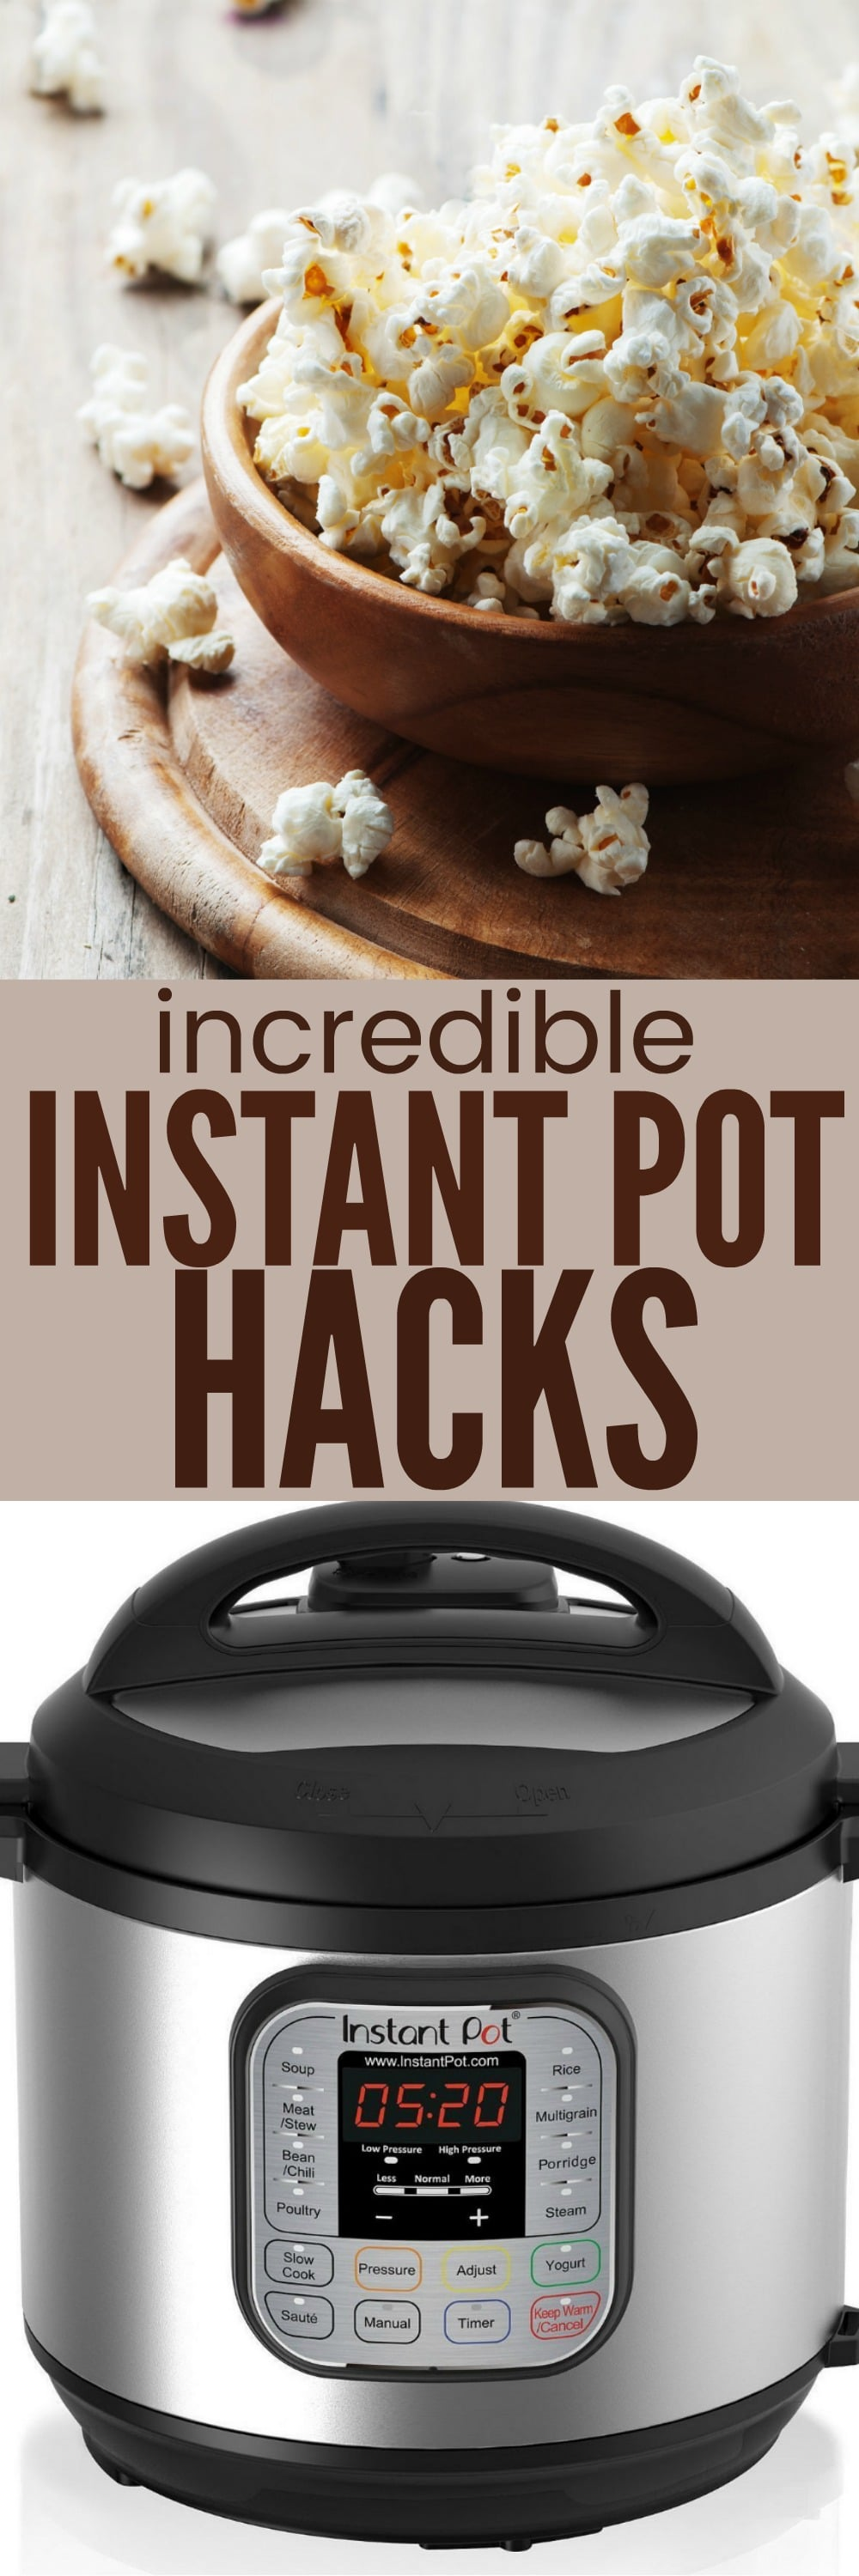 Incredible Instant Pot Hacks